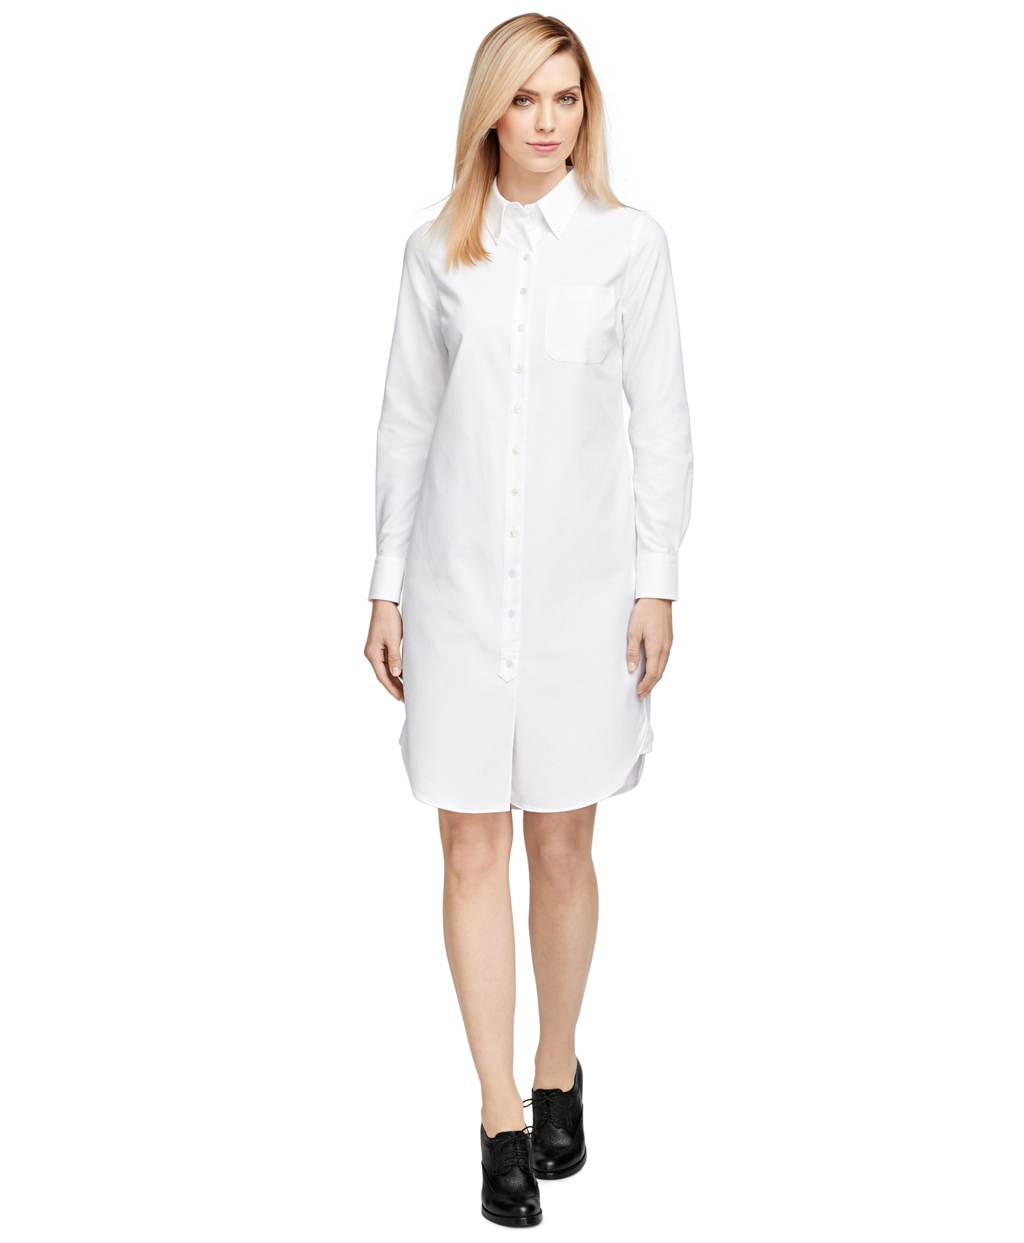 Brooks brothers Cotton Shirt Dress in White